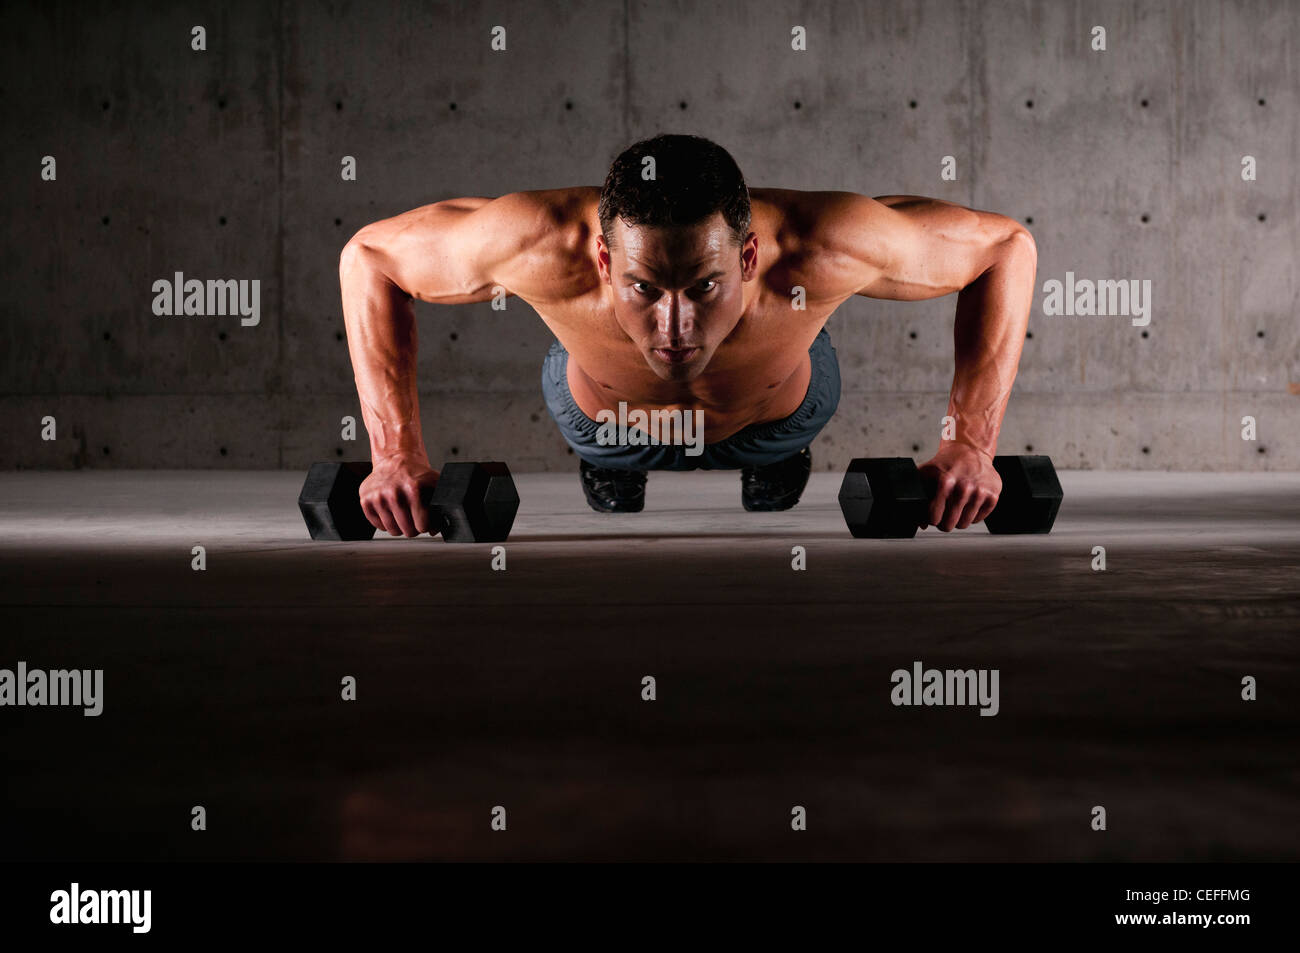 Athlete doing push ups on weights Stock Photo